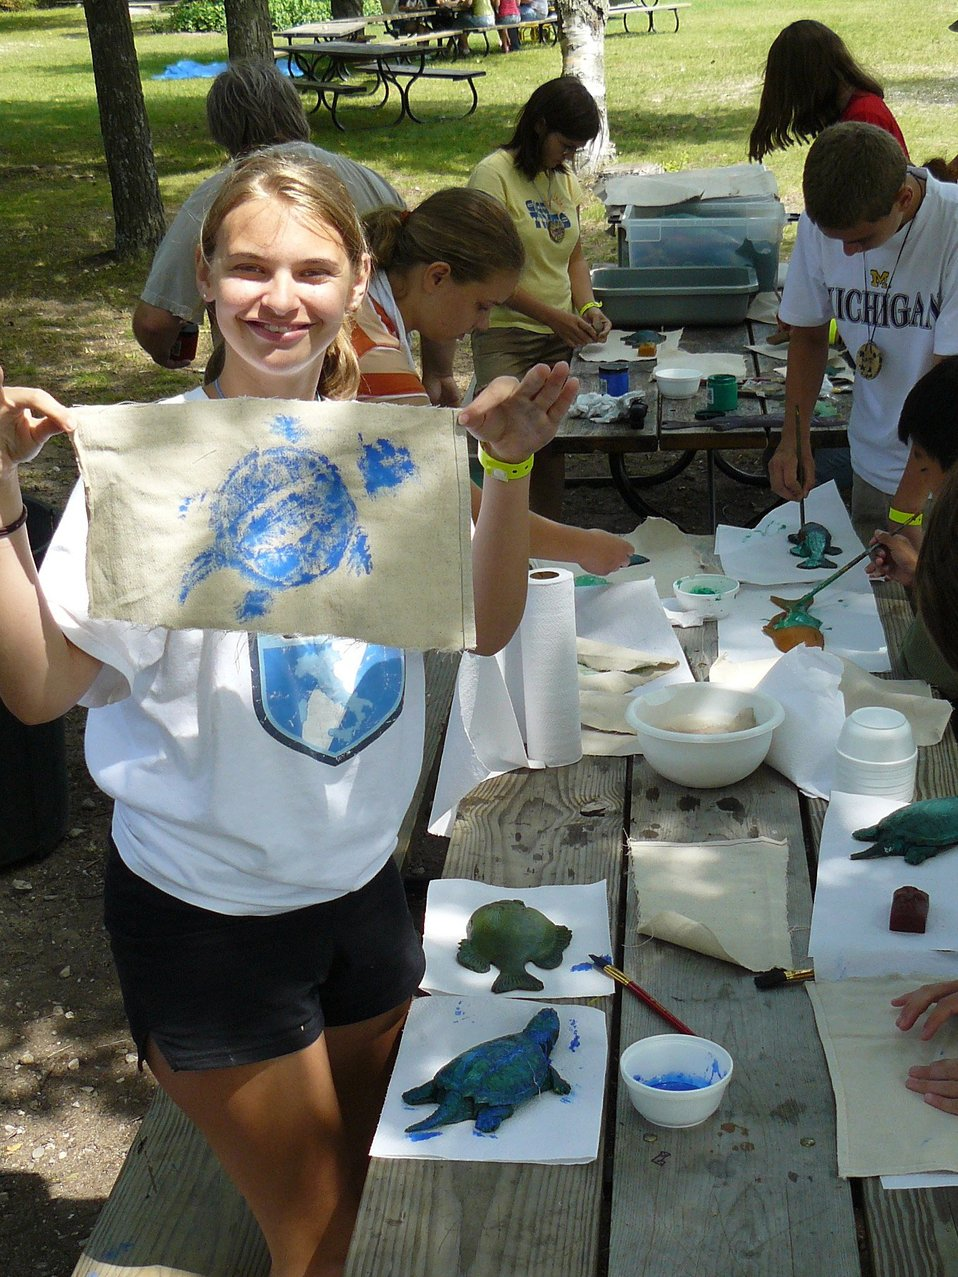 A Sea Grant sponsored function at which students produce artwork highlighting the fauna of the Great Lakes.